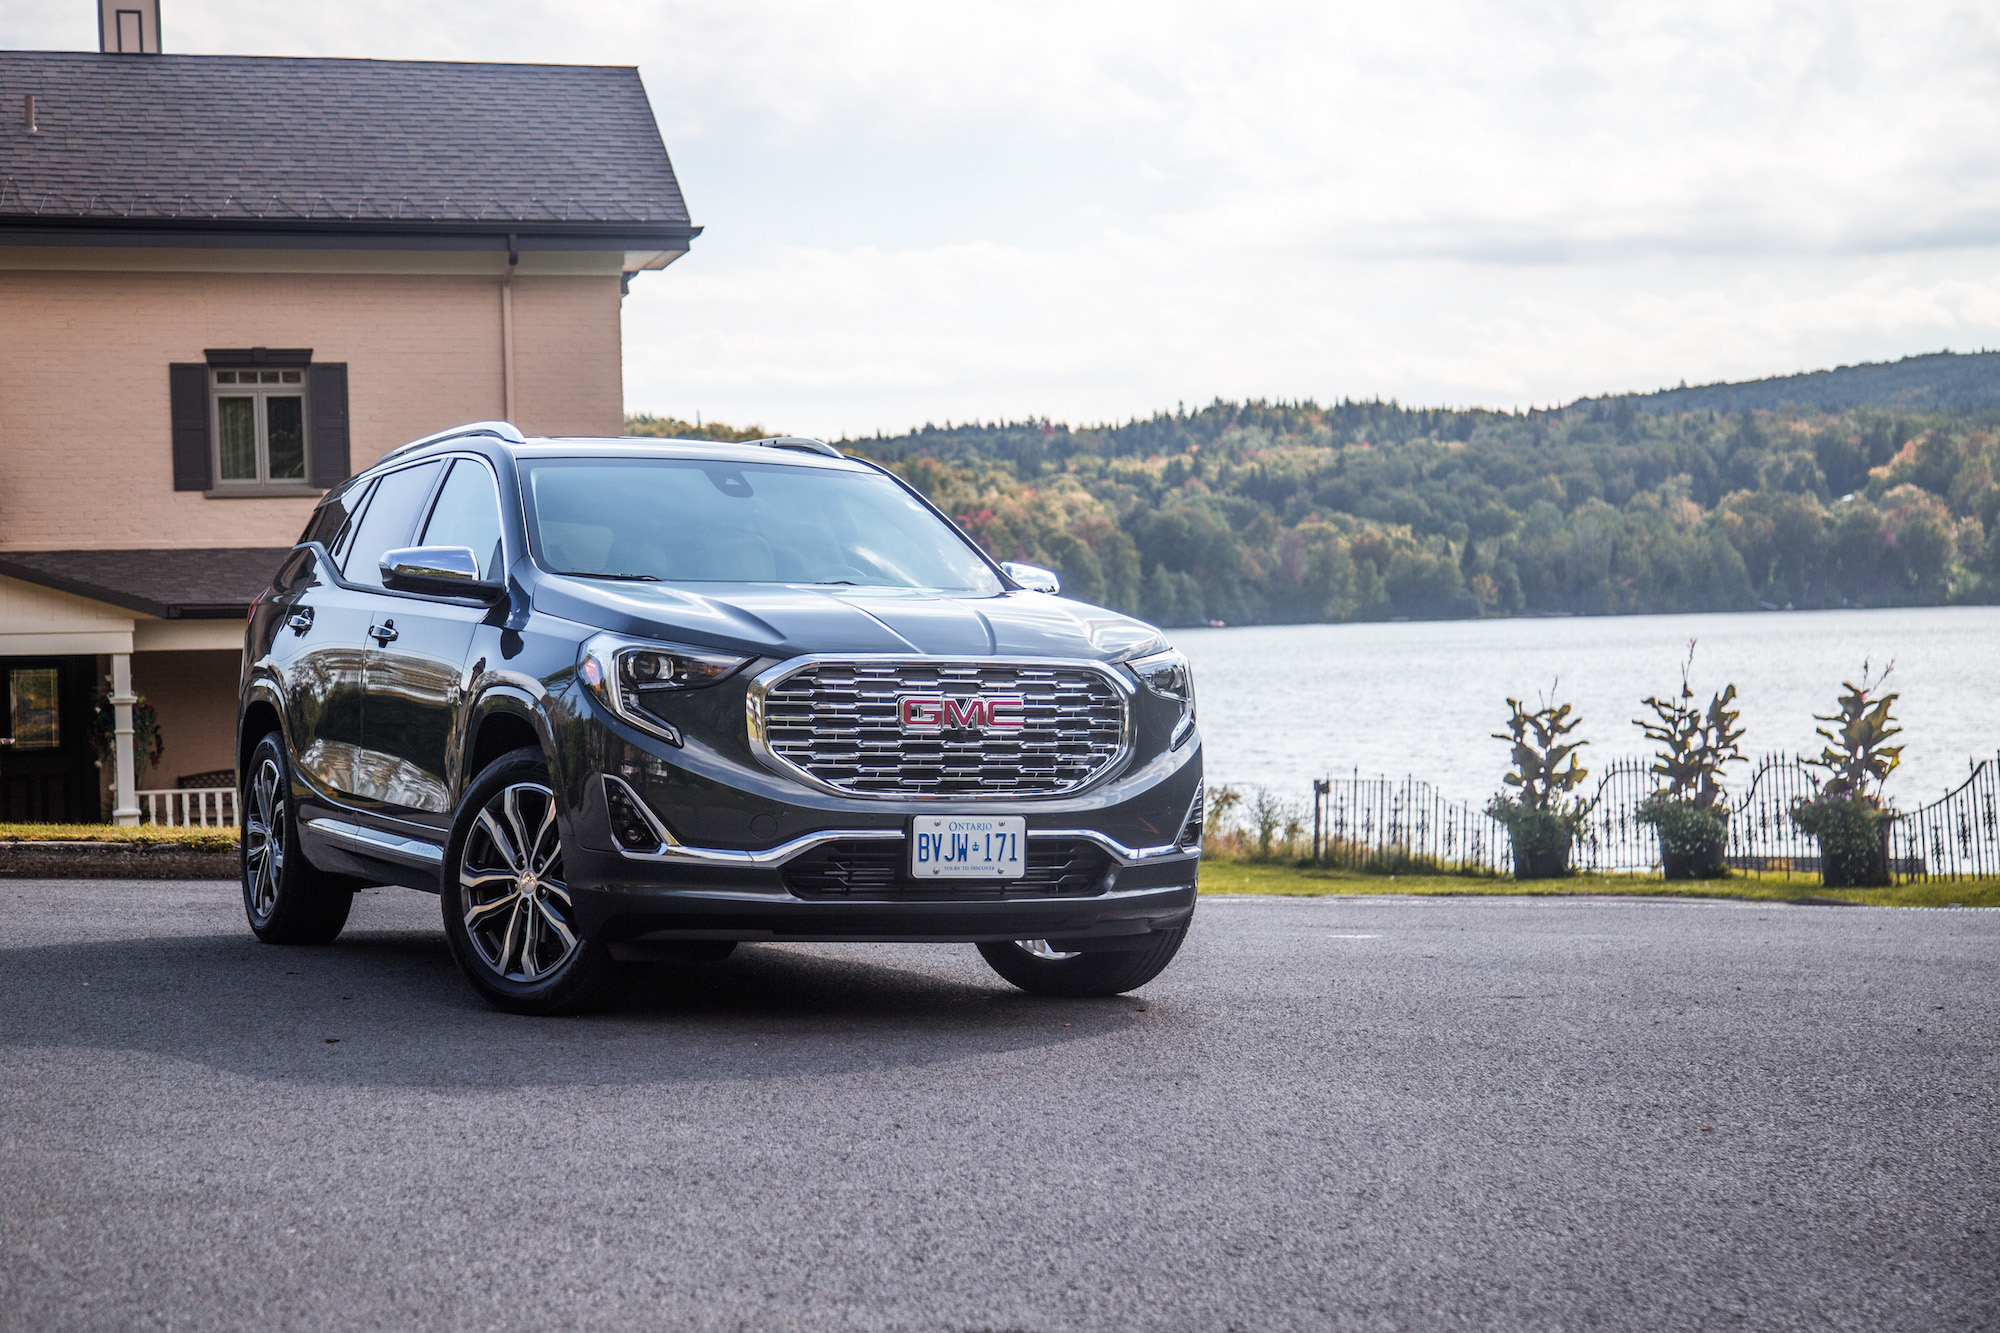 First Drive: 2018 GMC Terrain | Canadian Auto Review